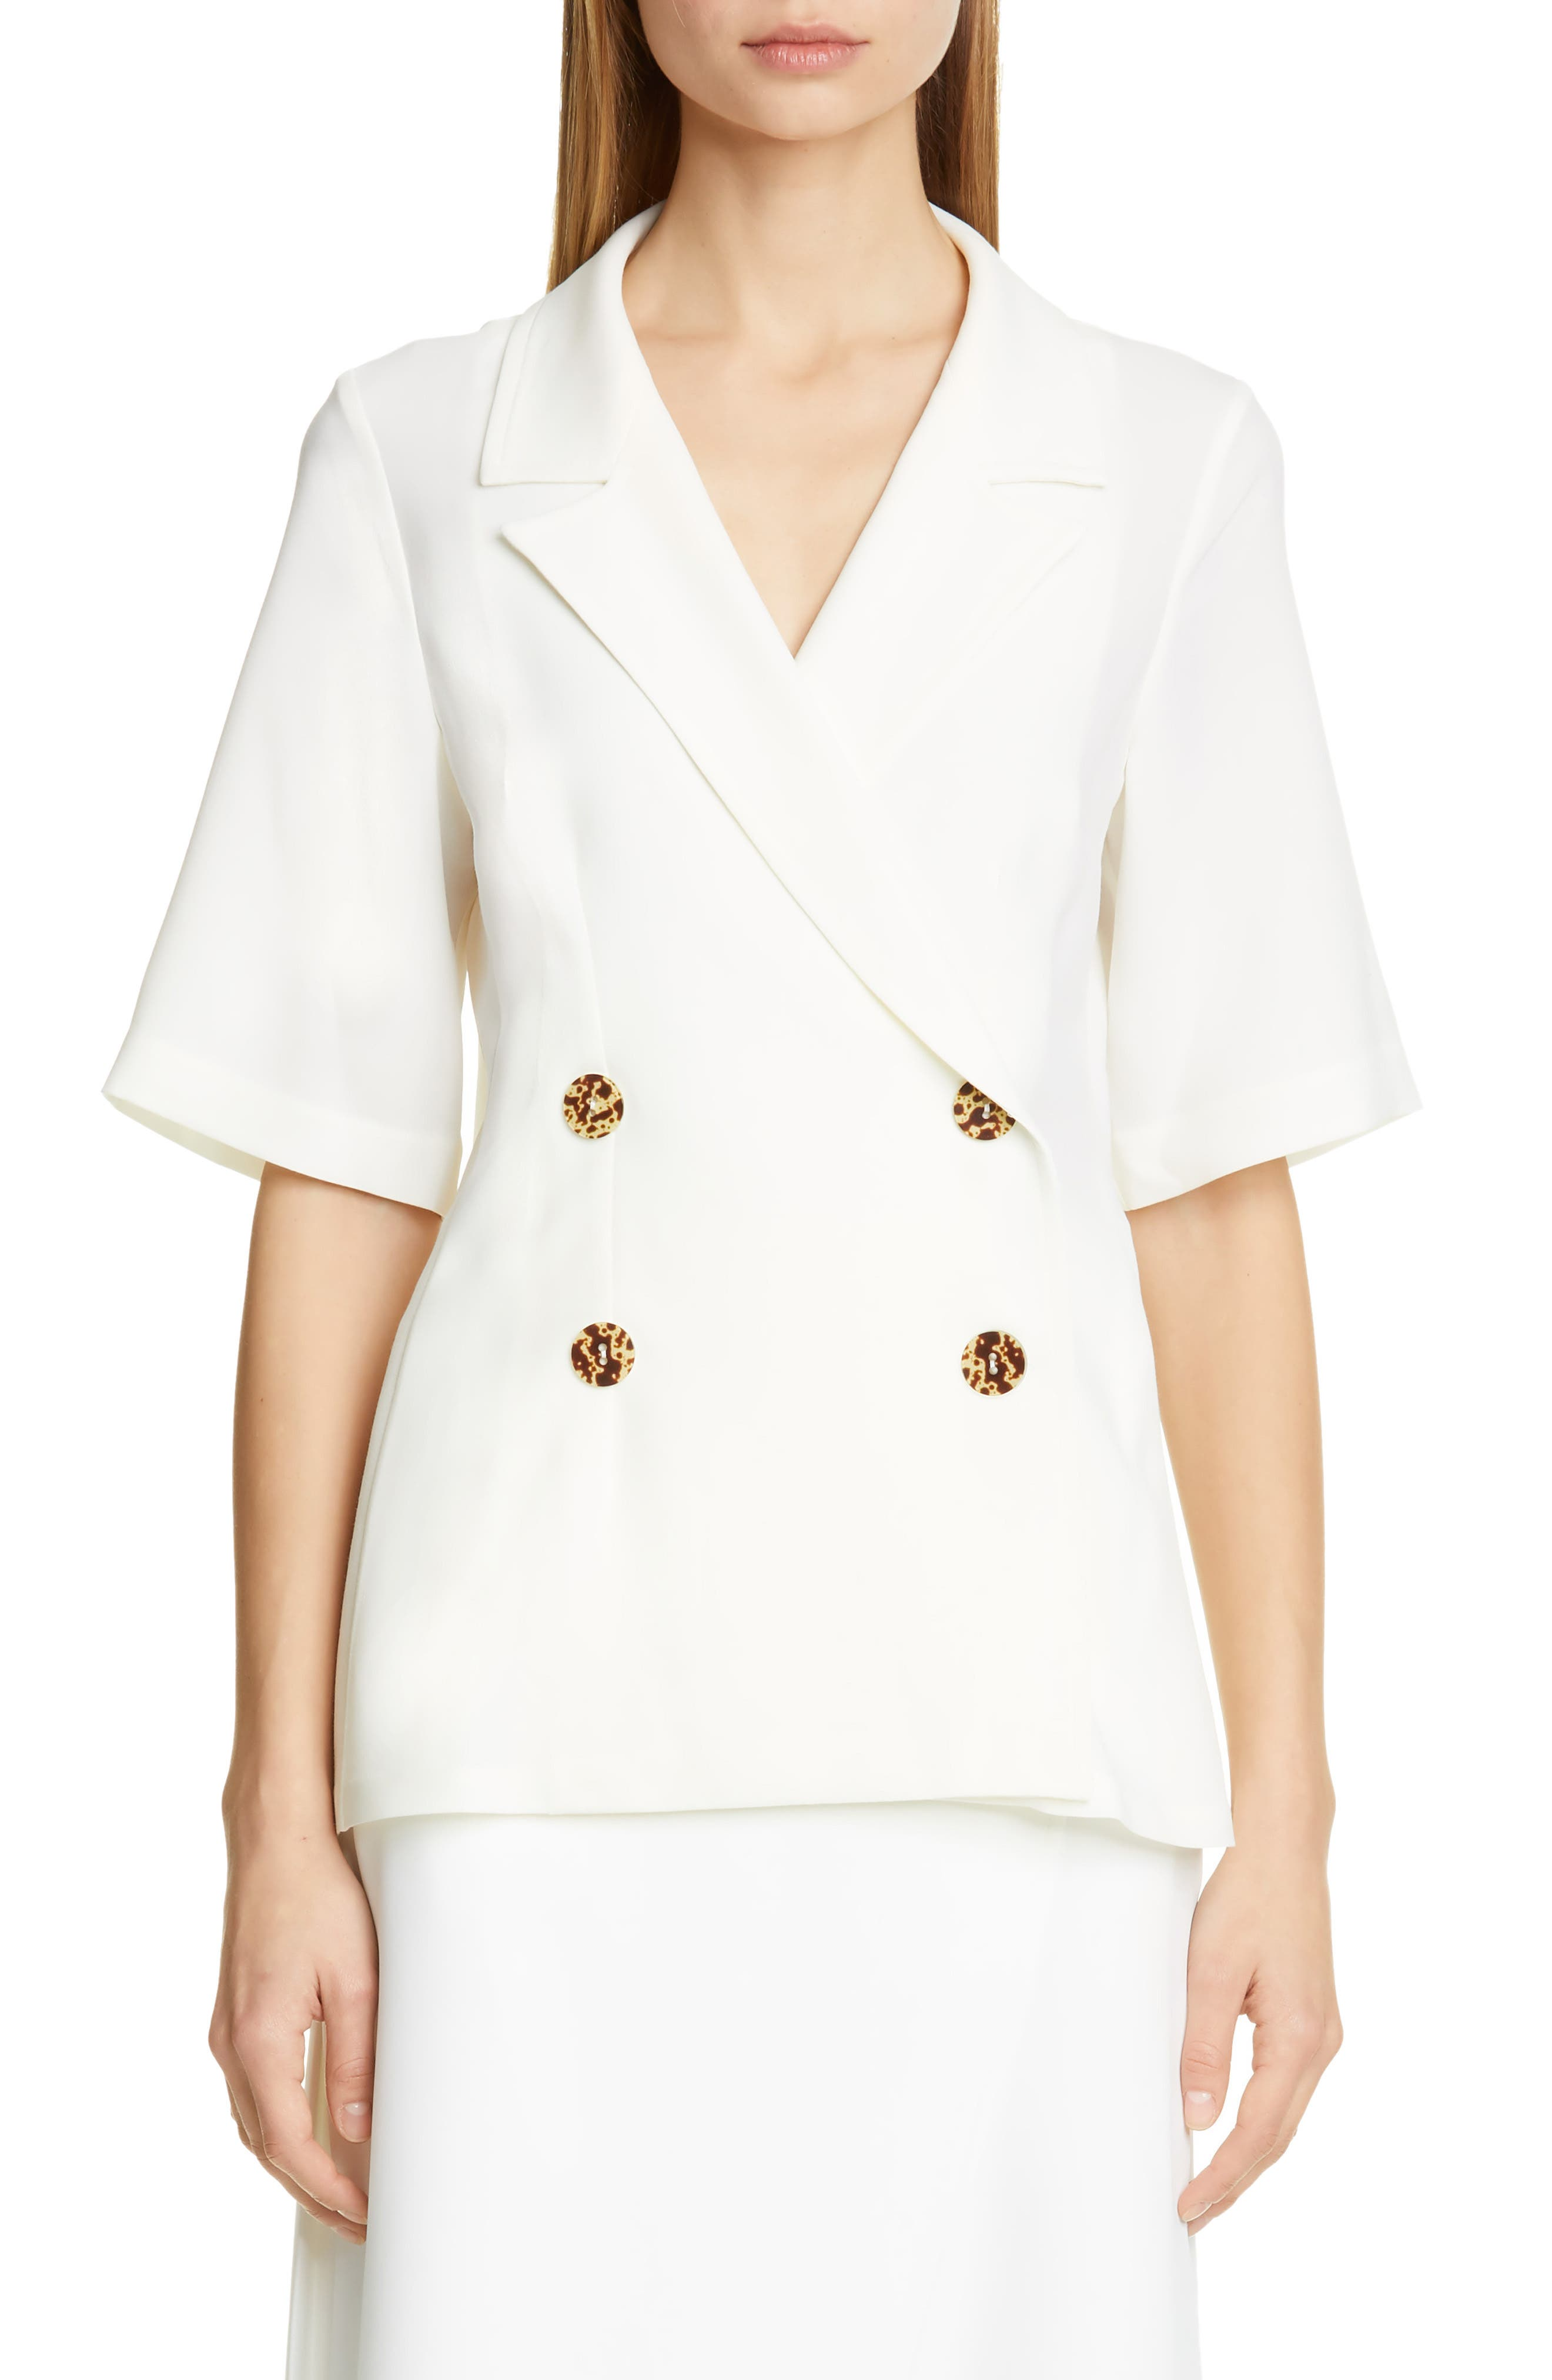 BEAUFILLE Siner Blouse, Main, color, WHITE